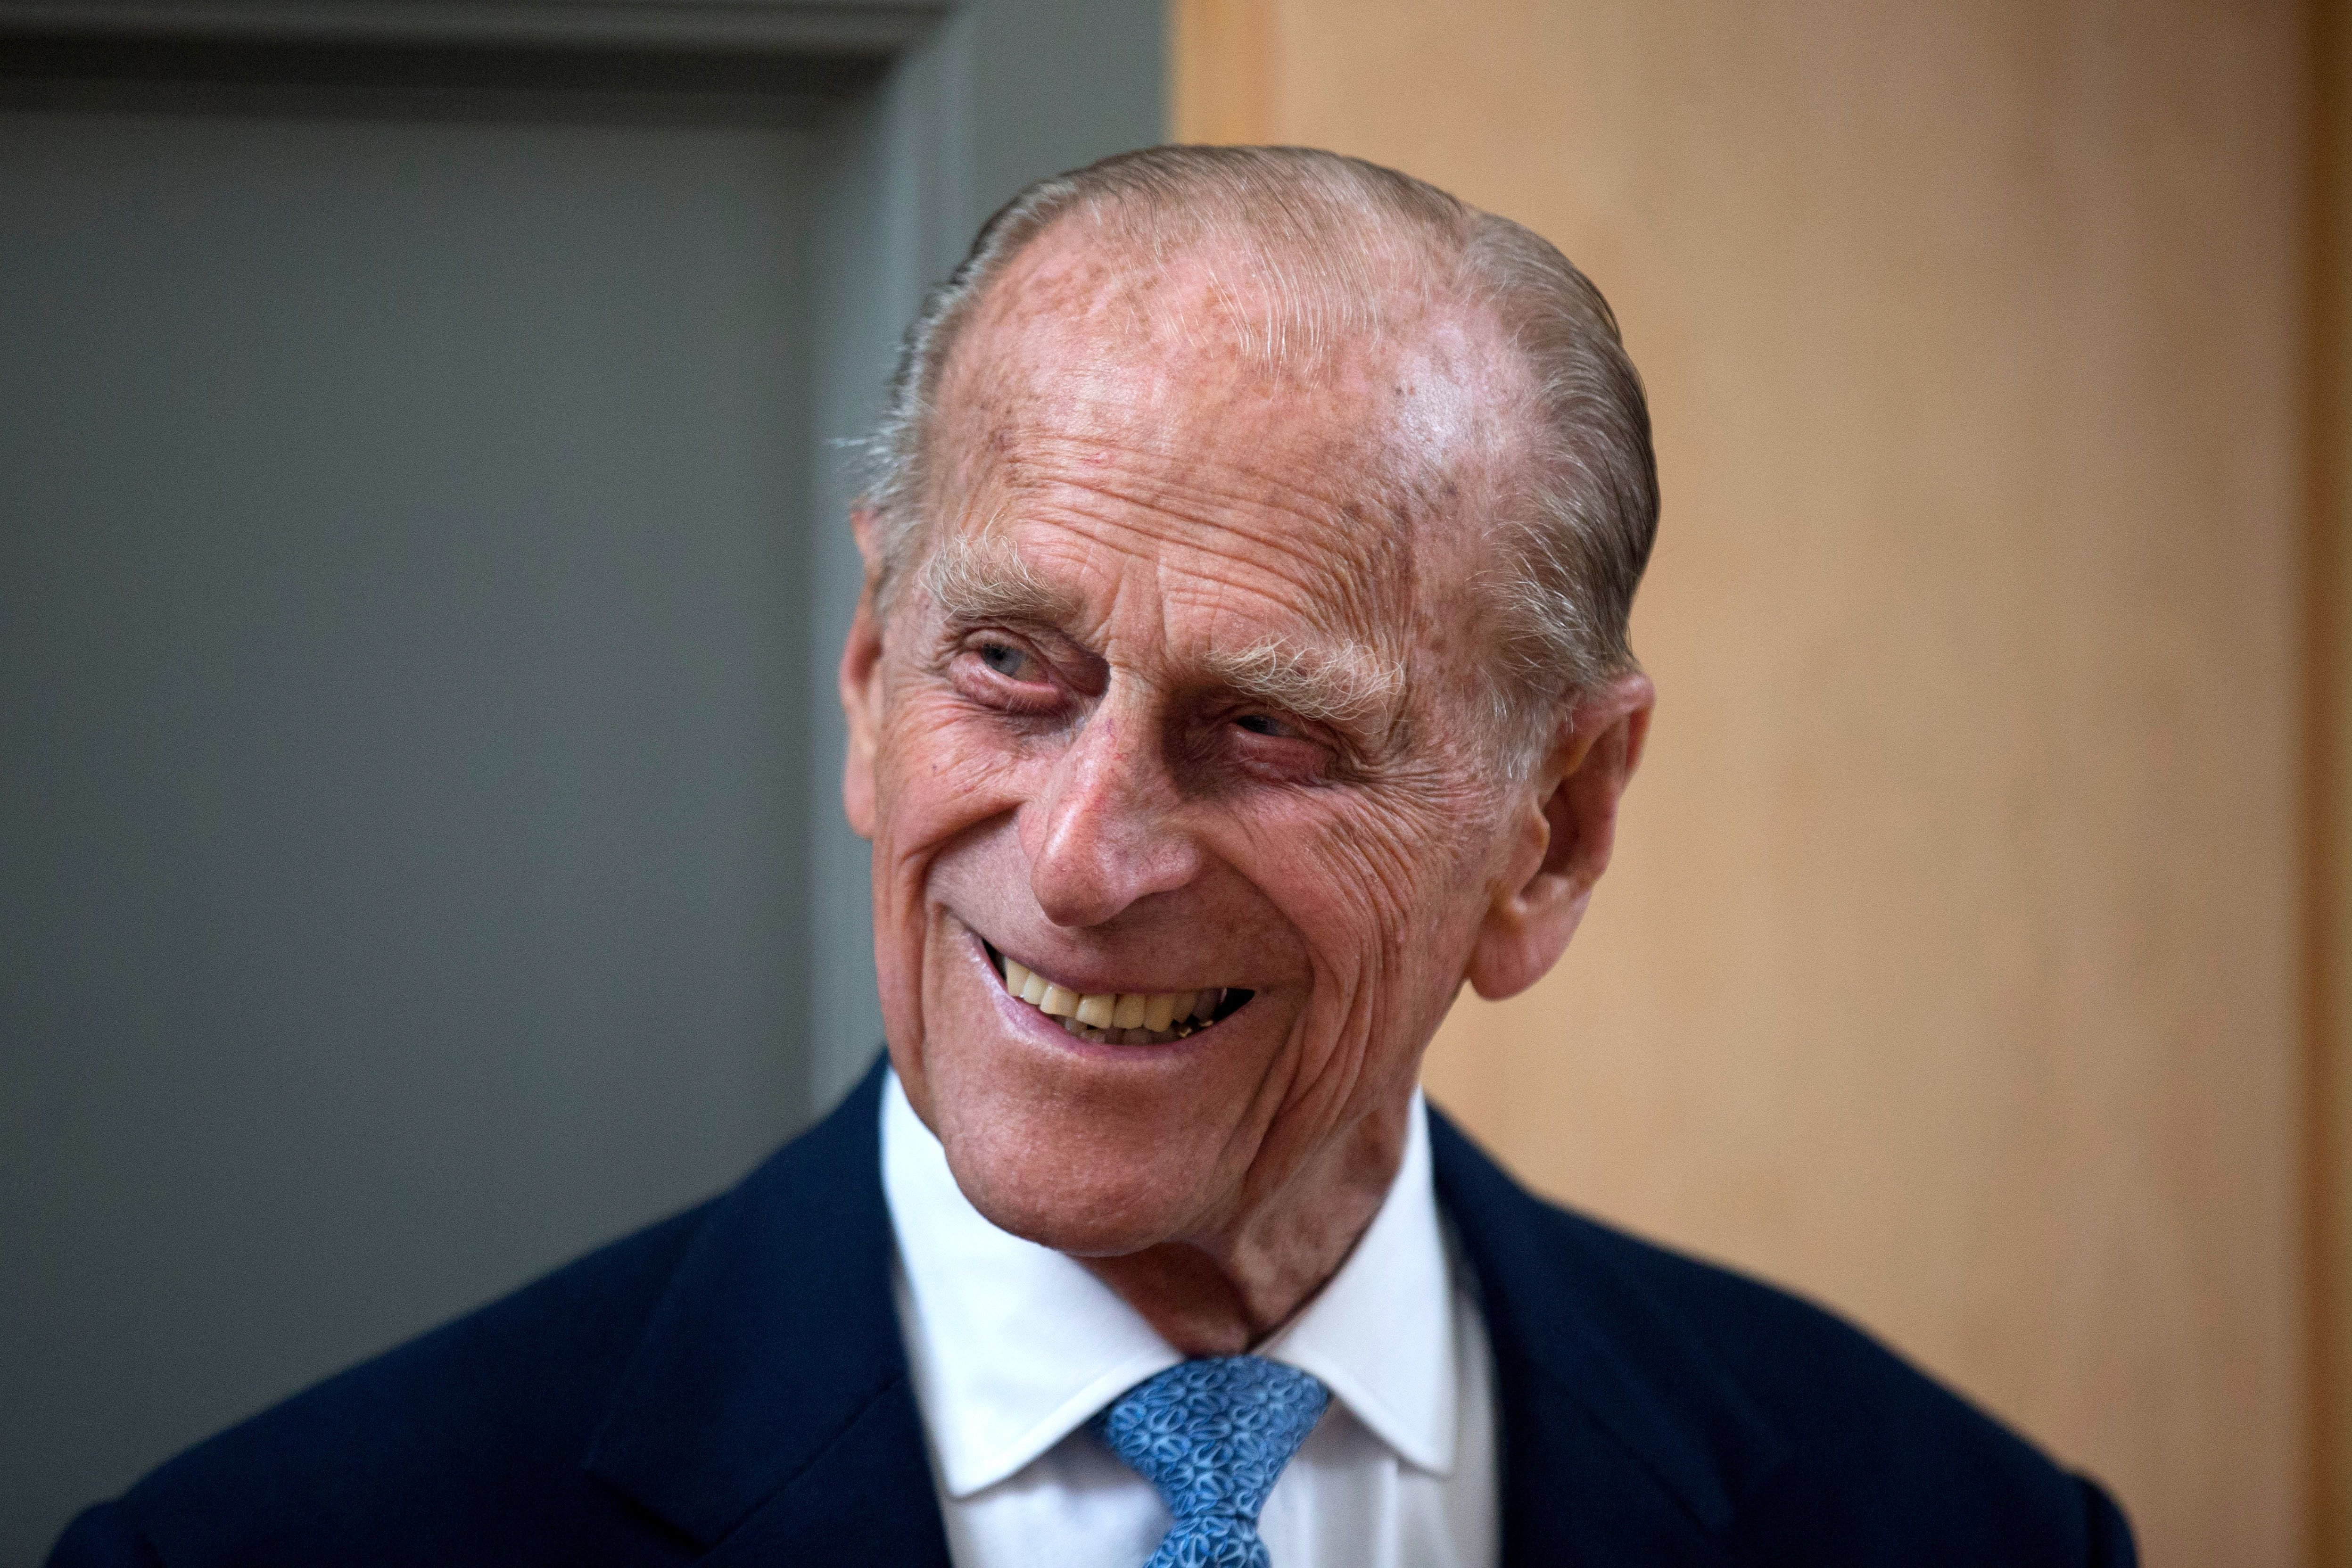 Prince Philip during his visit to Richmond Adult Community College in Richmond on June 8, 2015 in London, England. | Source: Getty Images